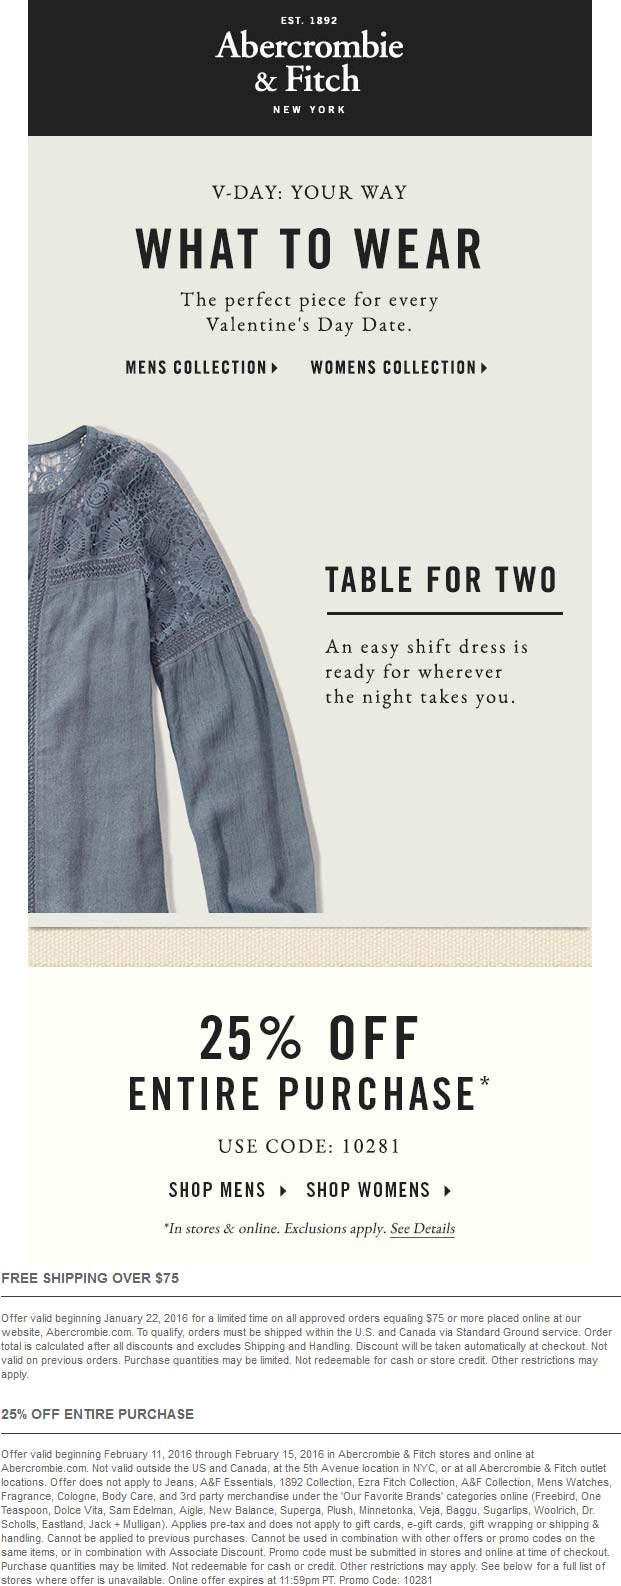 Abercrombie & Fitch Coupon June 2017 25% off at Abercrombie & Fitch, or online via promo code 10281